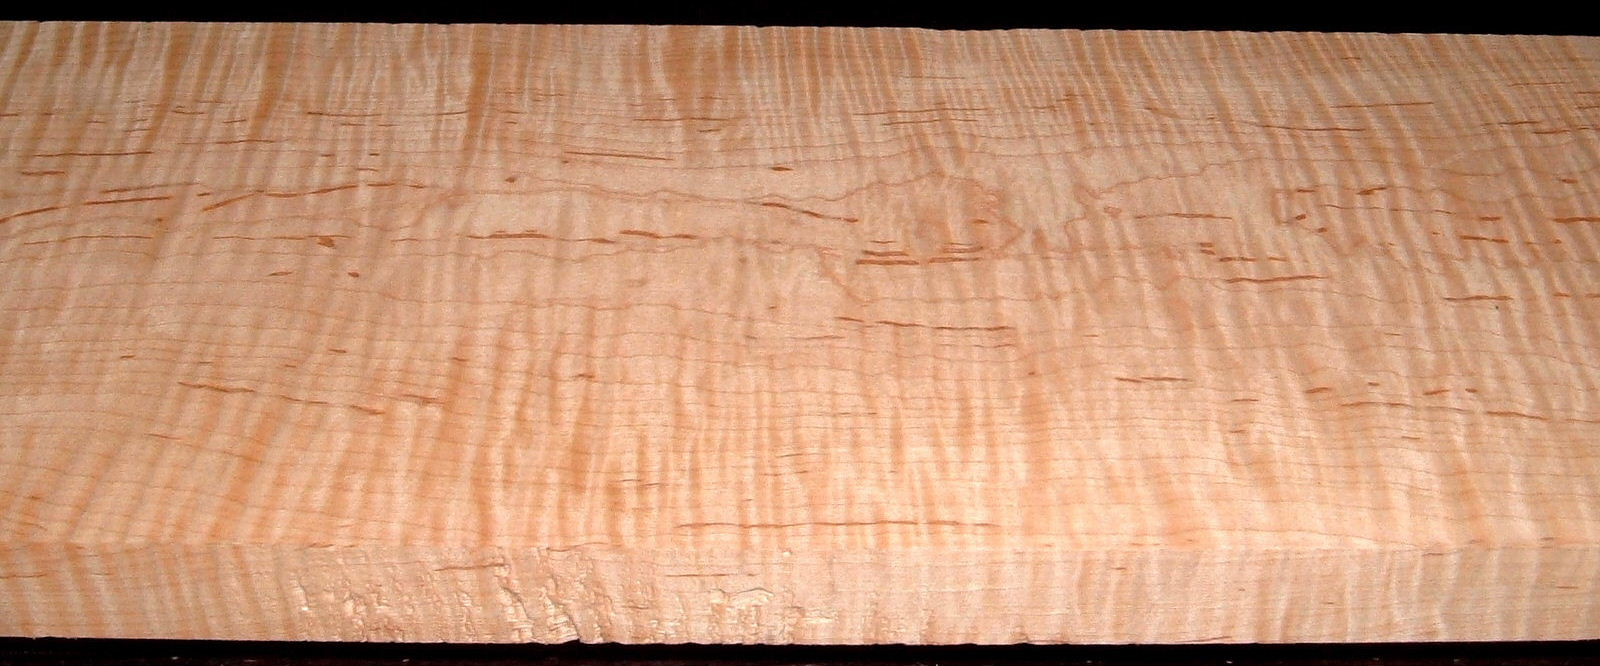 M2007-587L, 1-1/8x7-7/8x61, Mineral Streaked Curly Maple